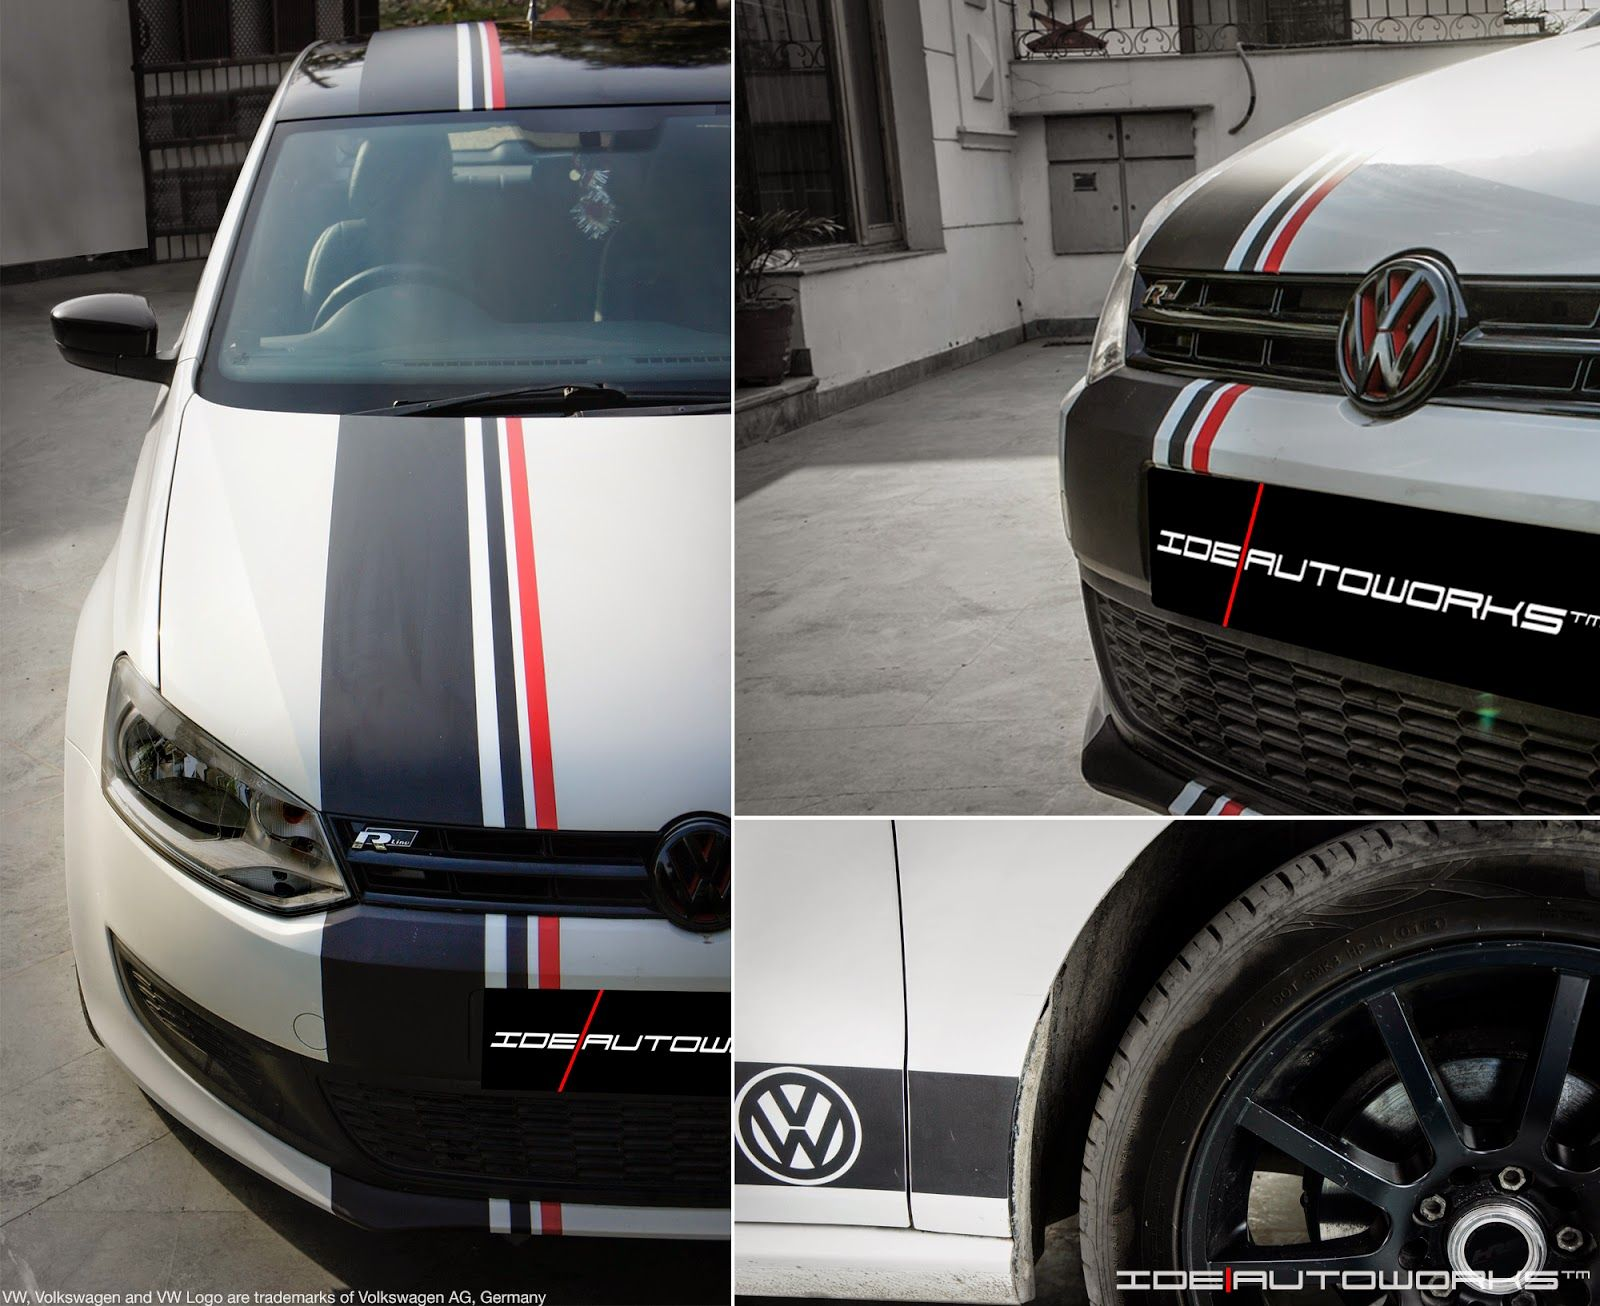 Ide autoworks offers vehicle graphics full car wraps personalized design solutions for your